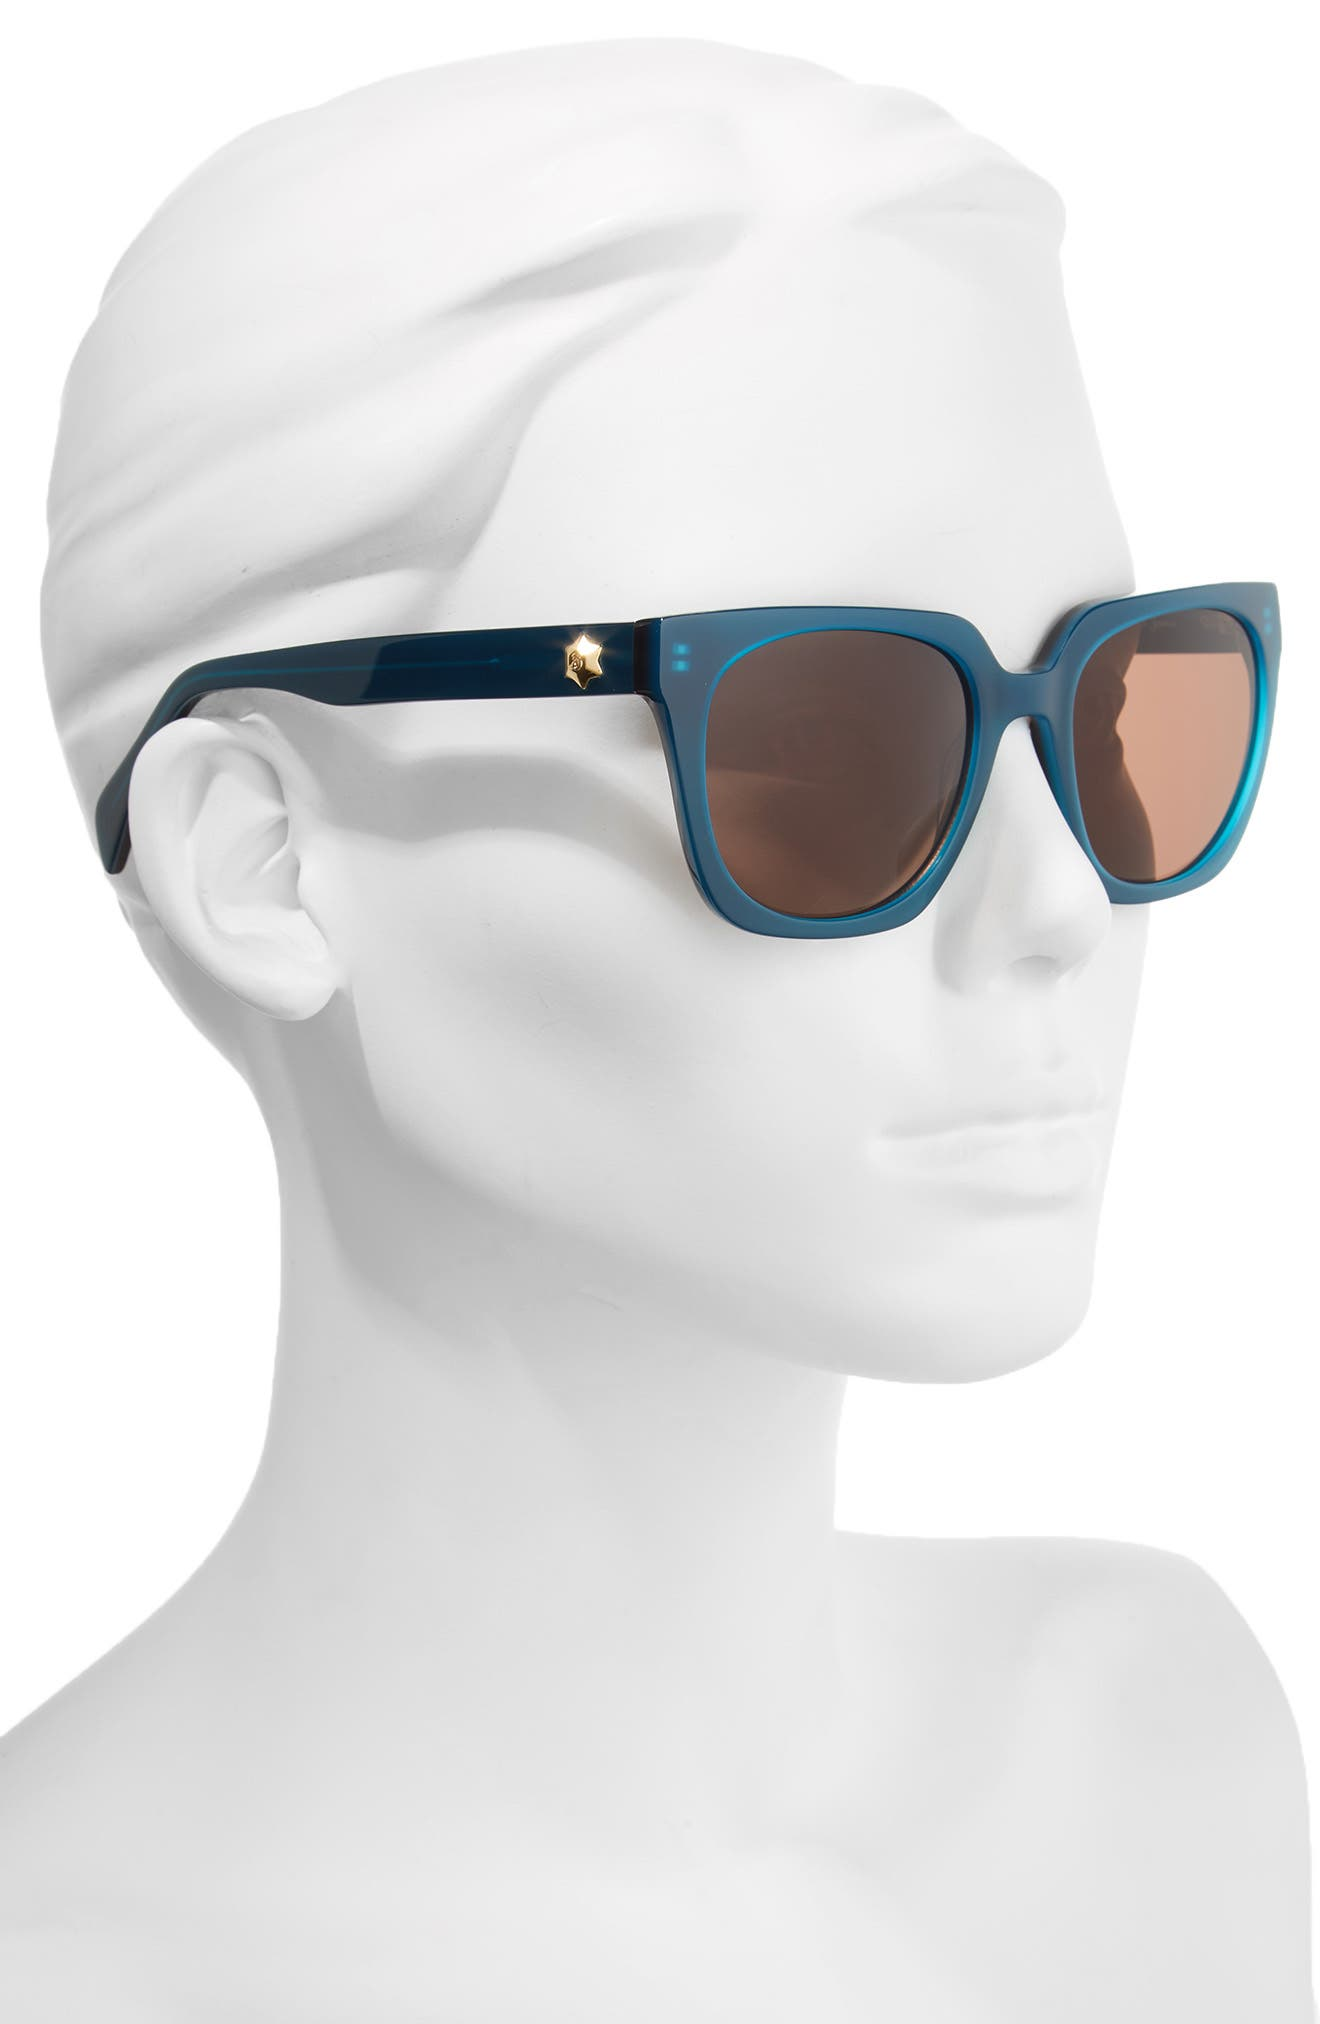 54mm Square Sunglasses,                             Alternate thumbnail 2, color,                             BLUE